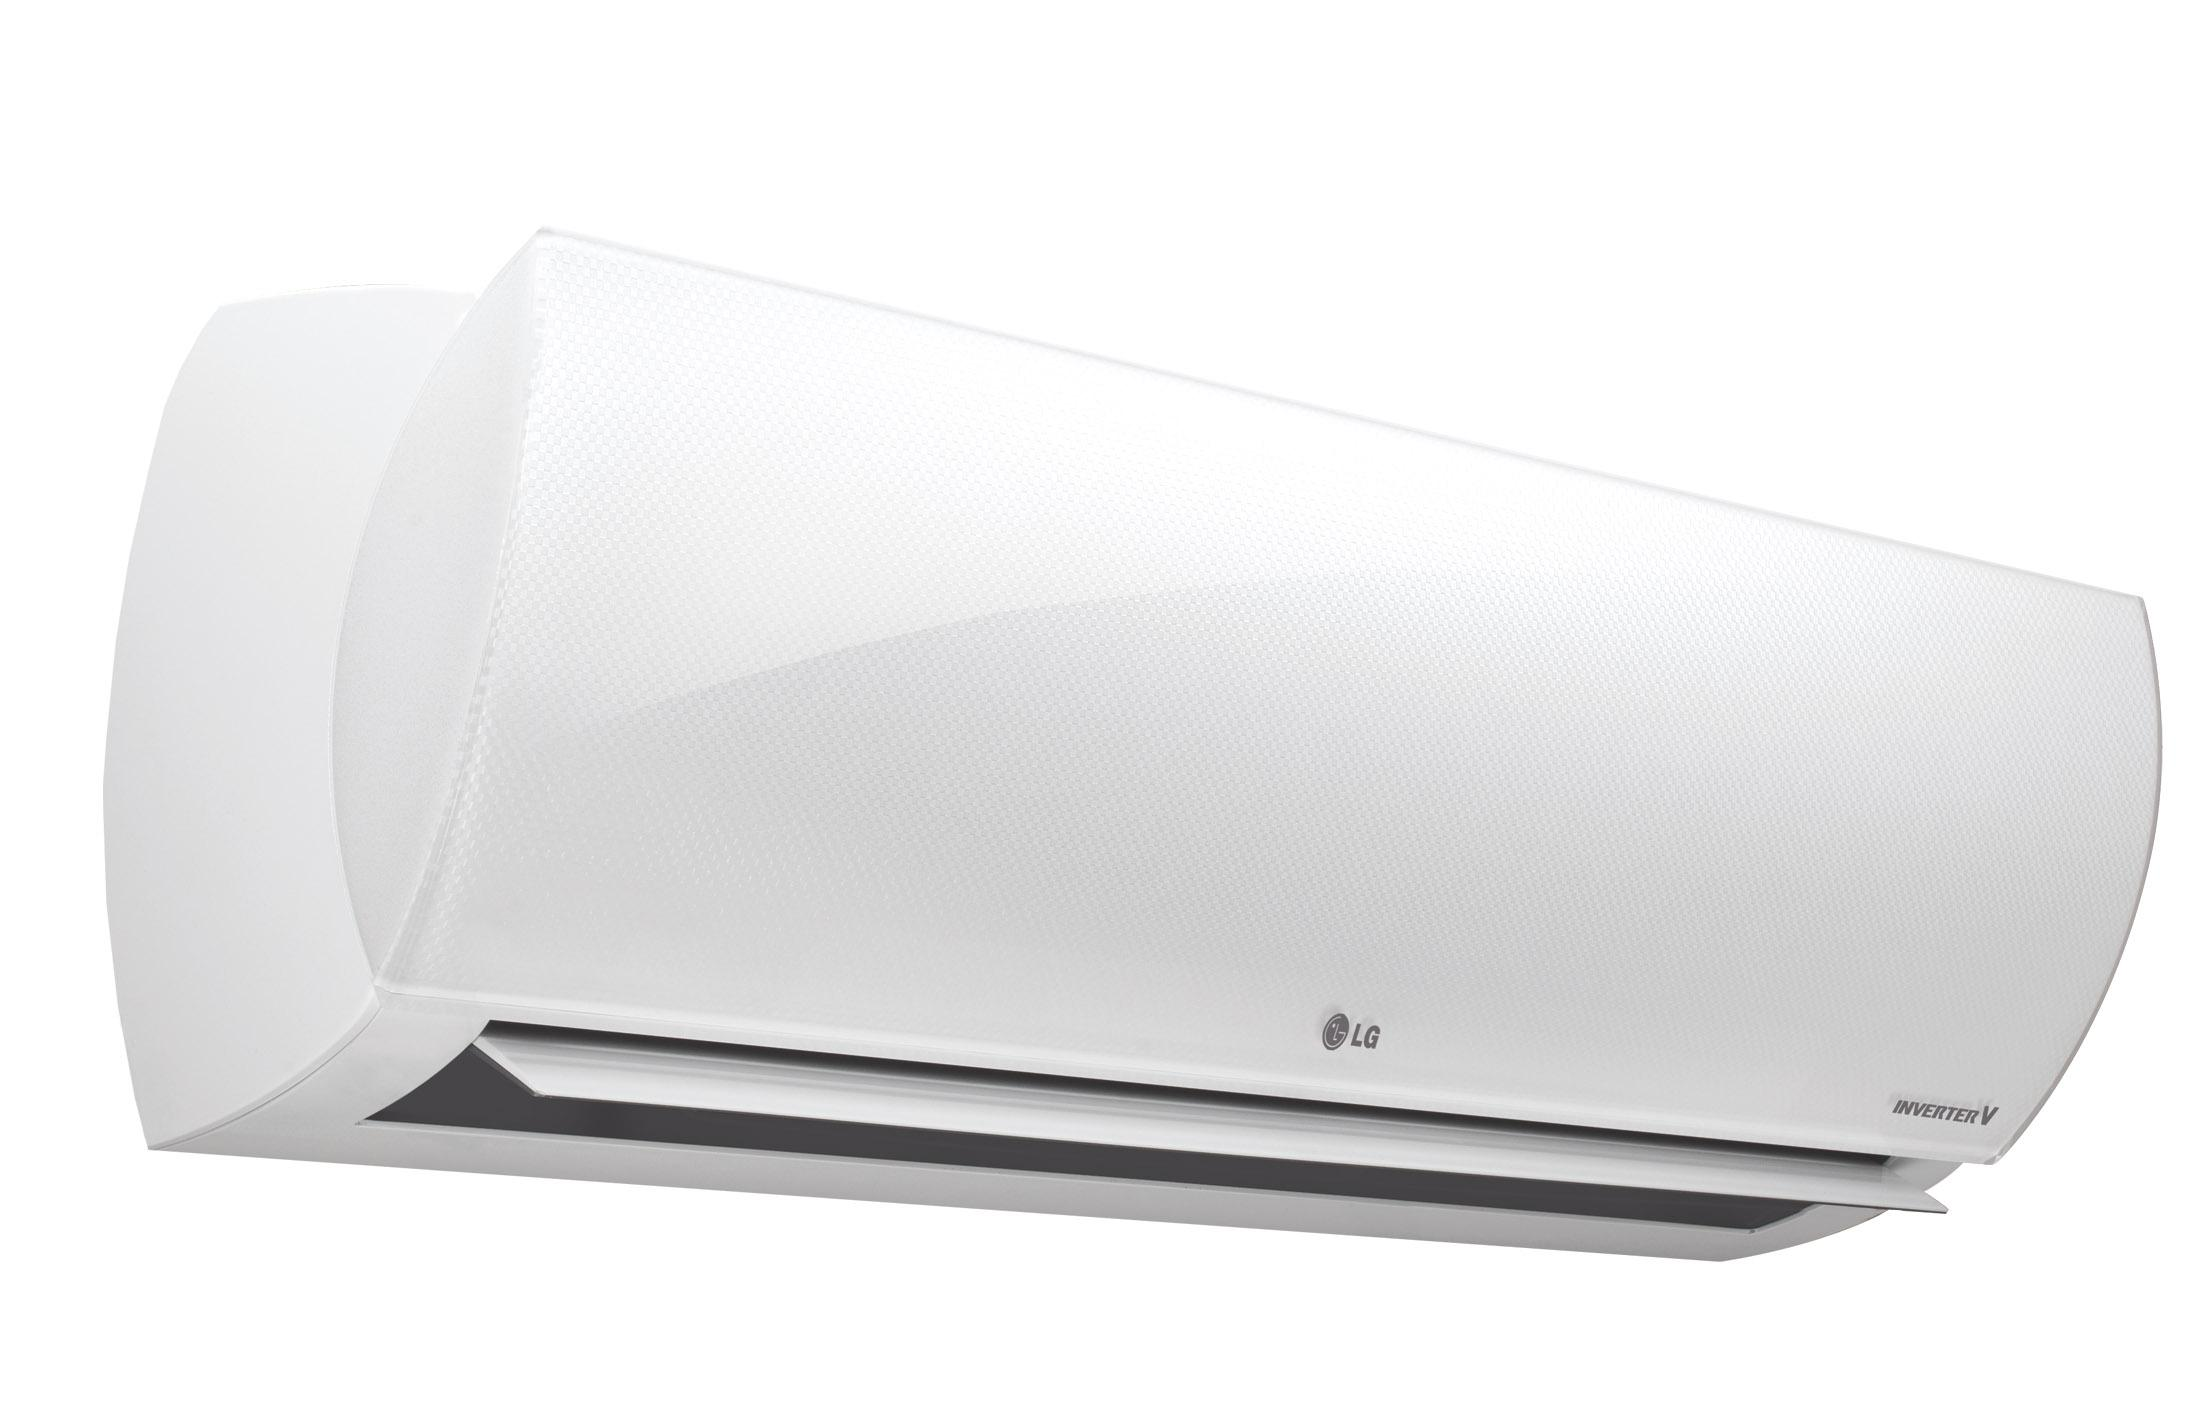 Lg Prestige H12al 3 5kw 12 000btu Inverter V Split Air